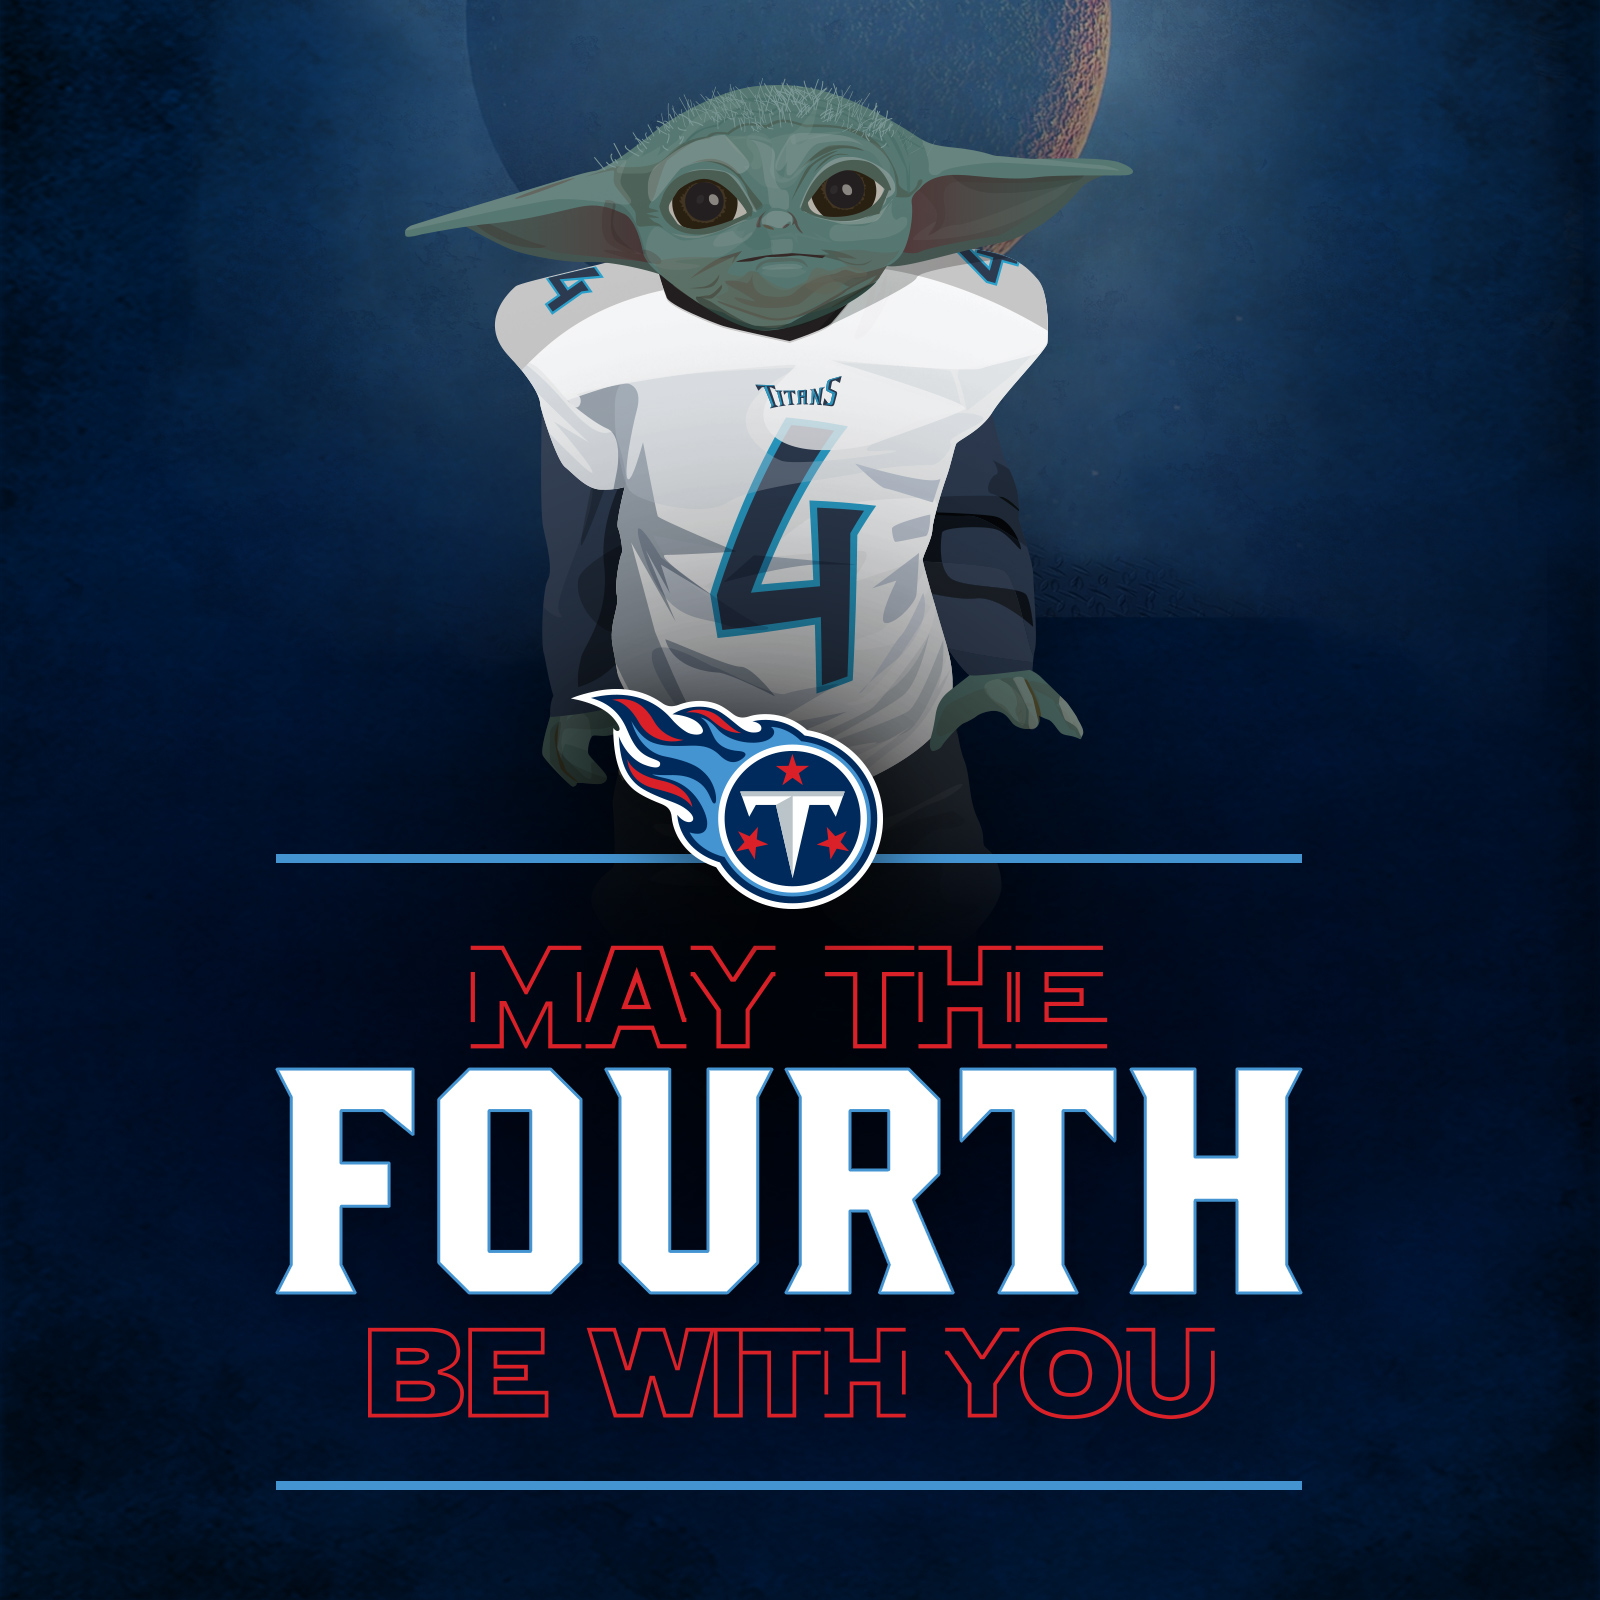 Sports Design / SMsports ›› Visual Design and Illustration for Star Wars Day for the Tennessee Titans